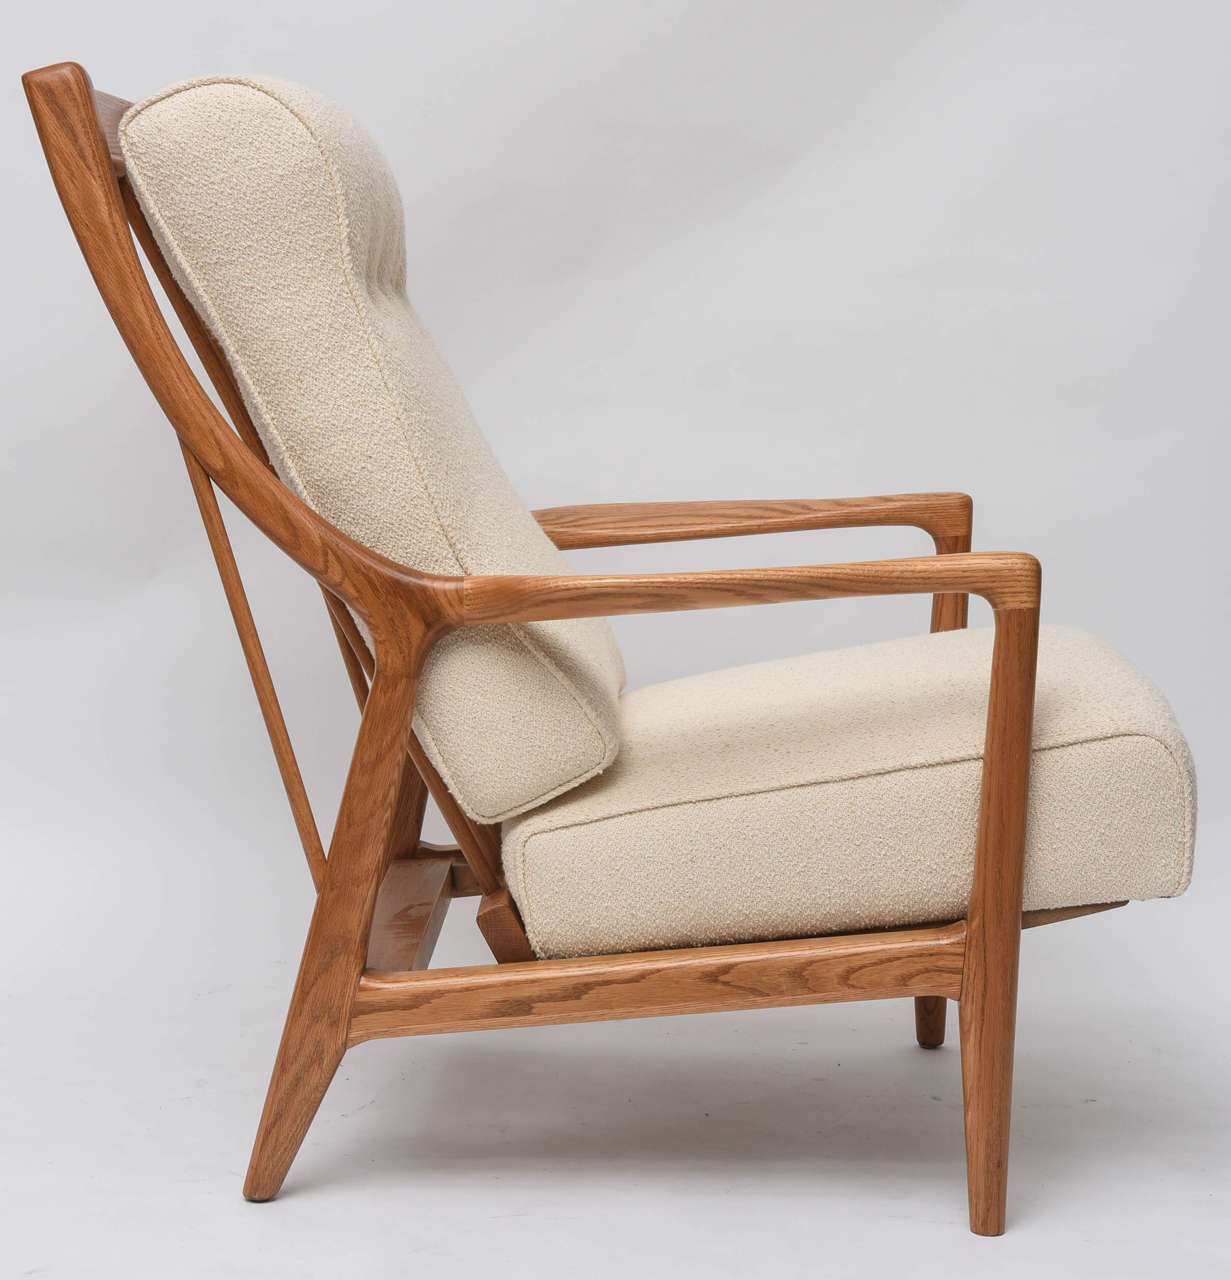 1950s Oak Reclining Chair With Ottoman At 1stdibs